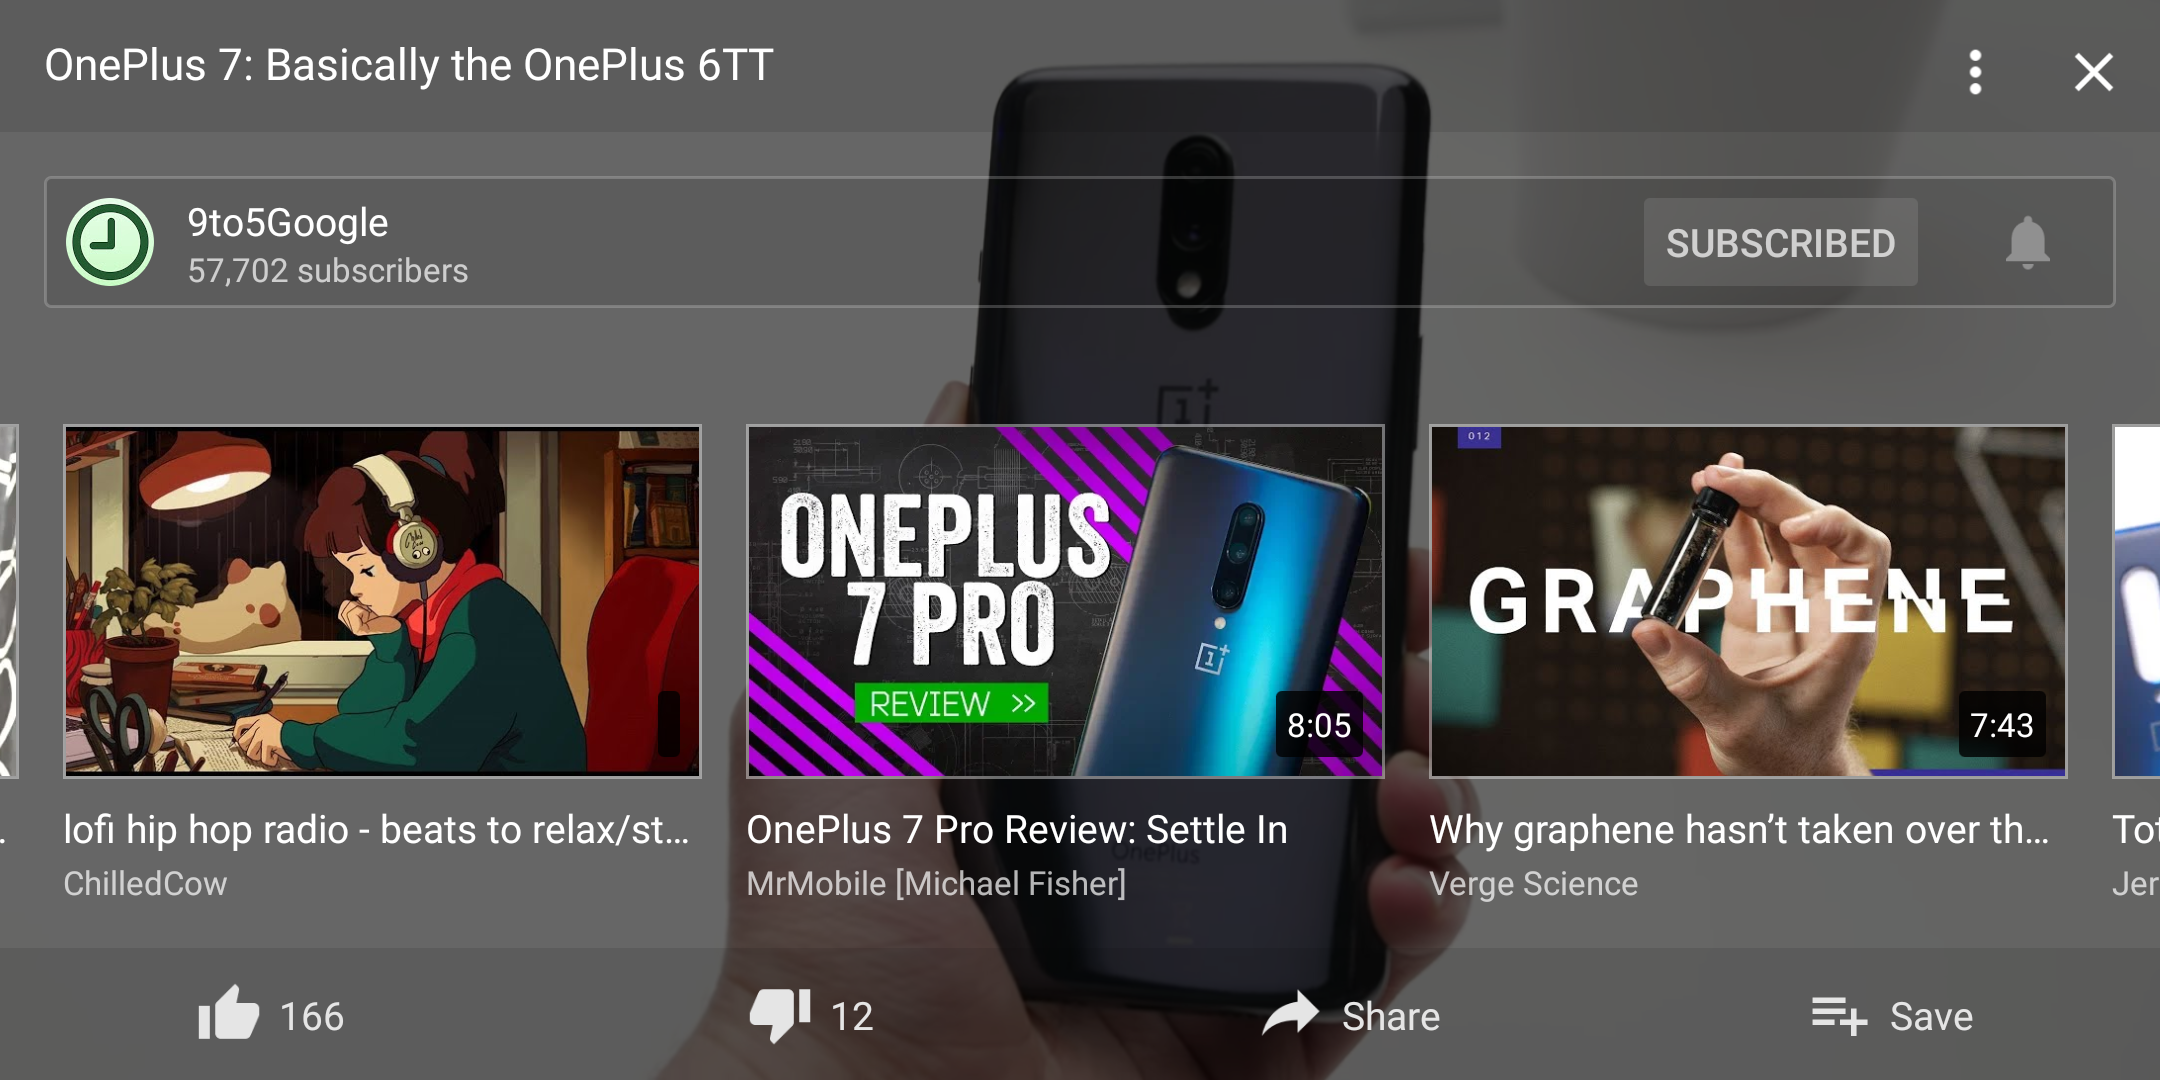 YouTube adds more actions to fullscreen UI on Android - 9to5Google